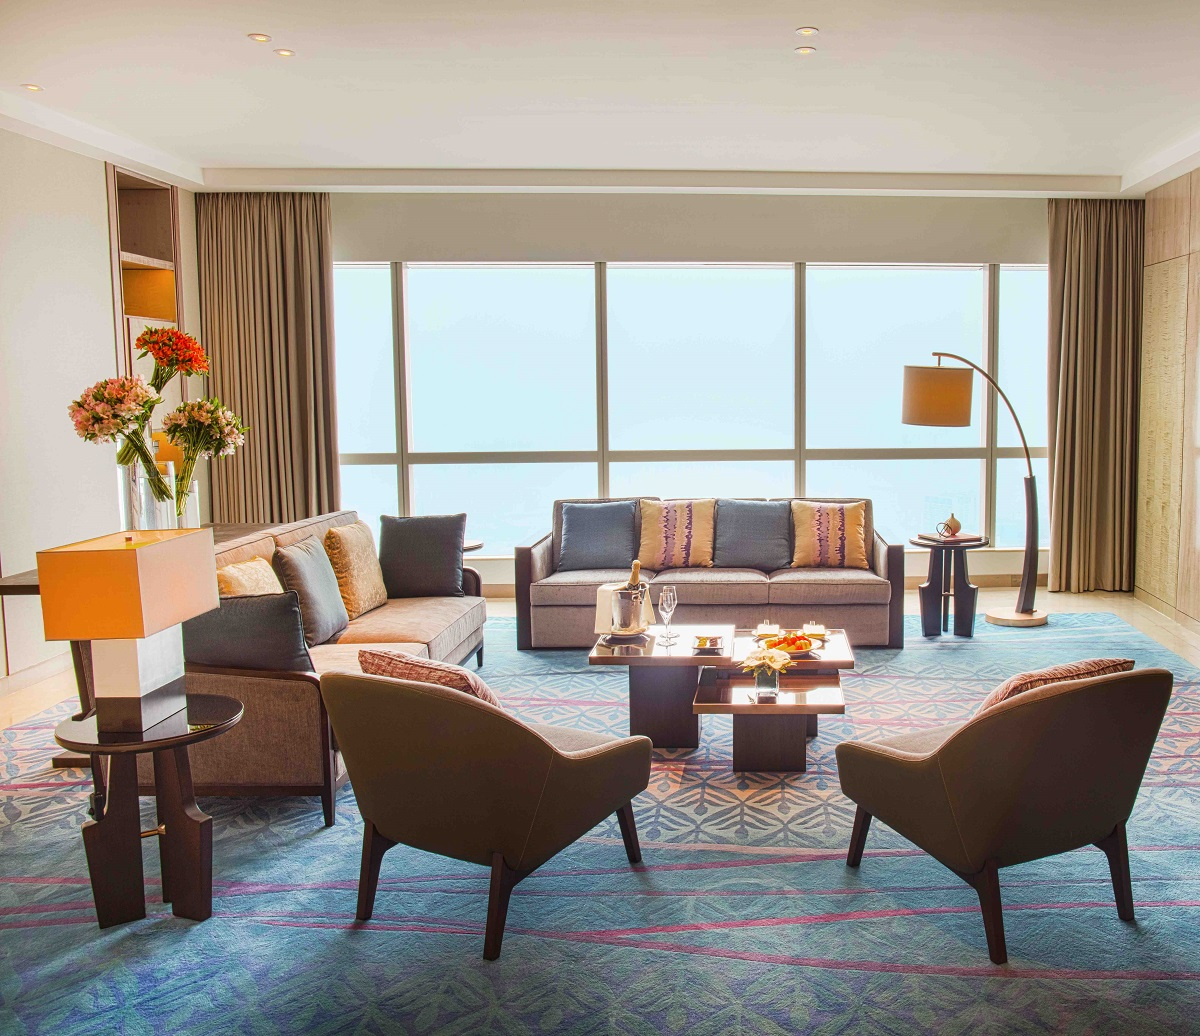 Luxurious accommodation and Club InterContinental benefits with the Presidential Suite at InterContinental Hanoi Landmark72